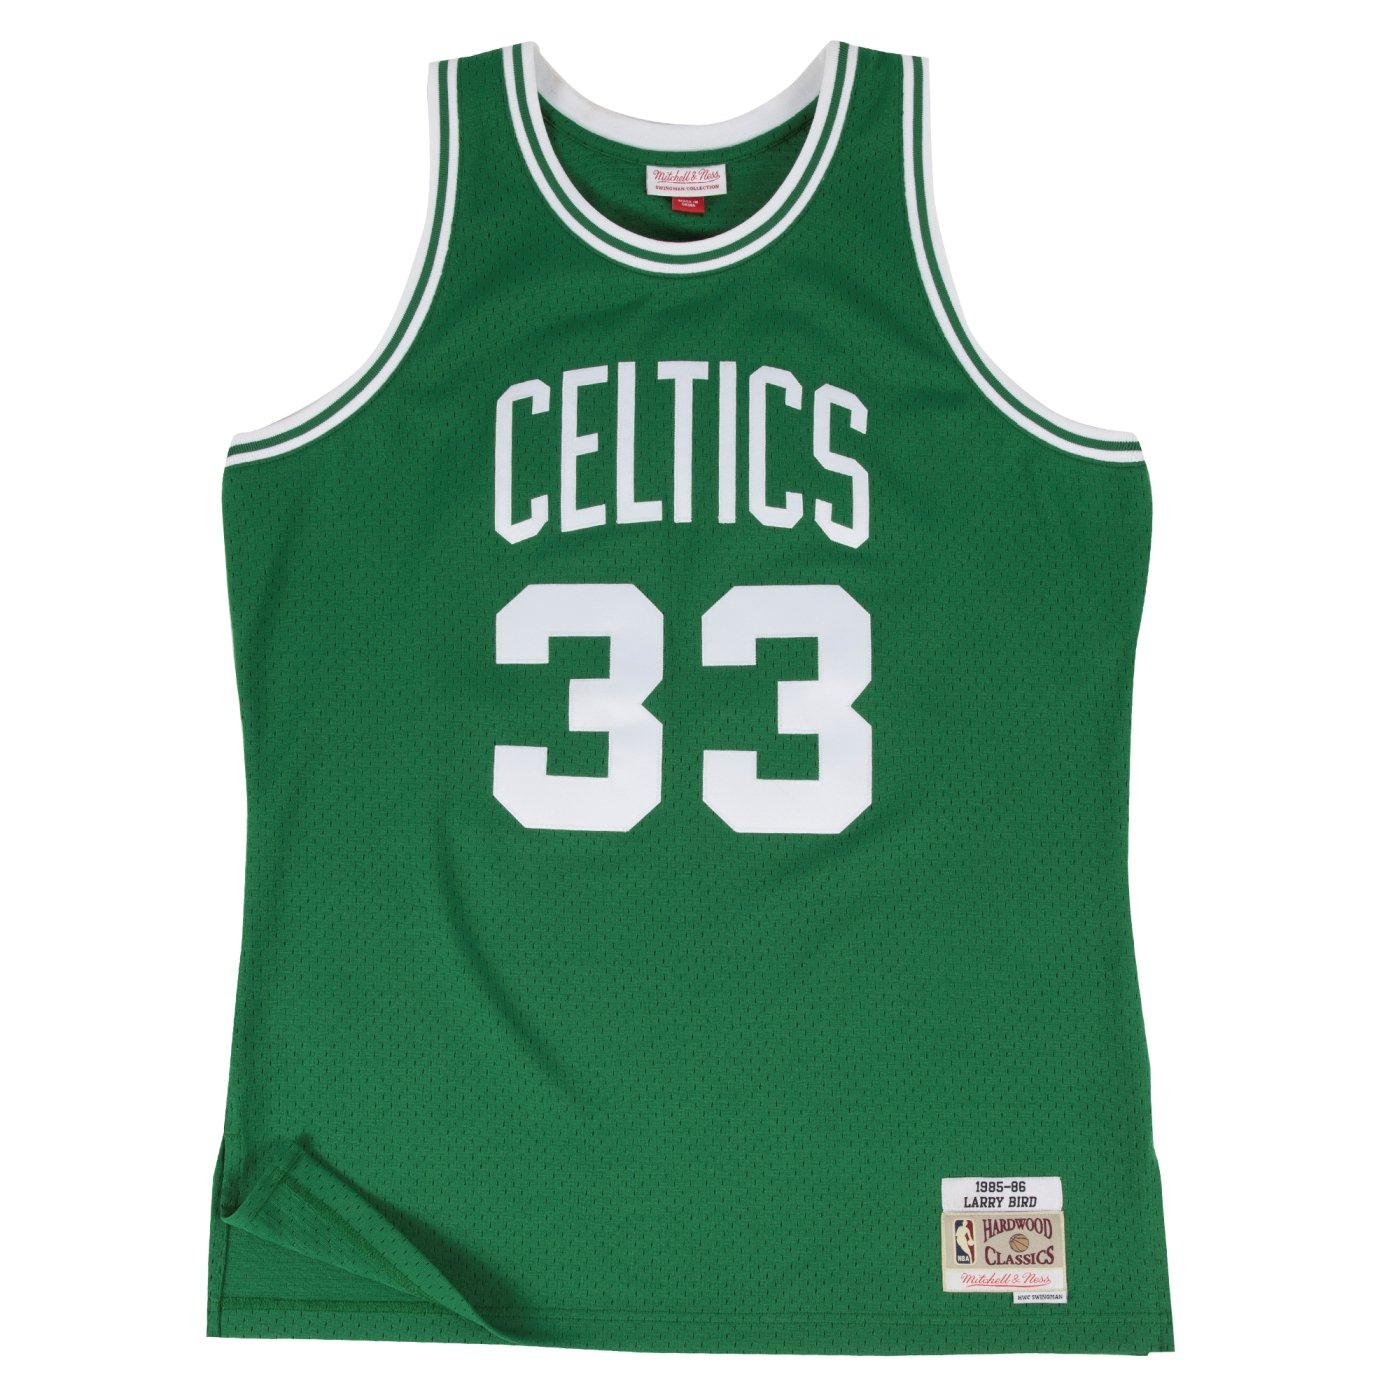 Mitchell & Ness Larry Bird Boston Celtics NBA Throwback HWC Jersey - Verde - 353J-FGYLBI, Verde: Amazon.es: Deportes y aire libre